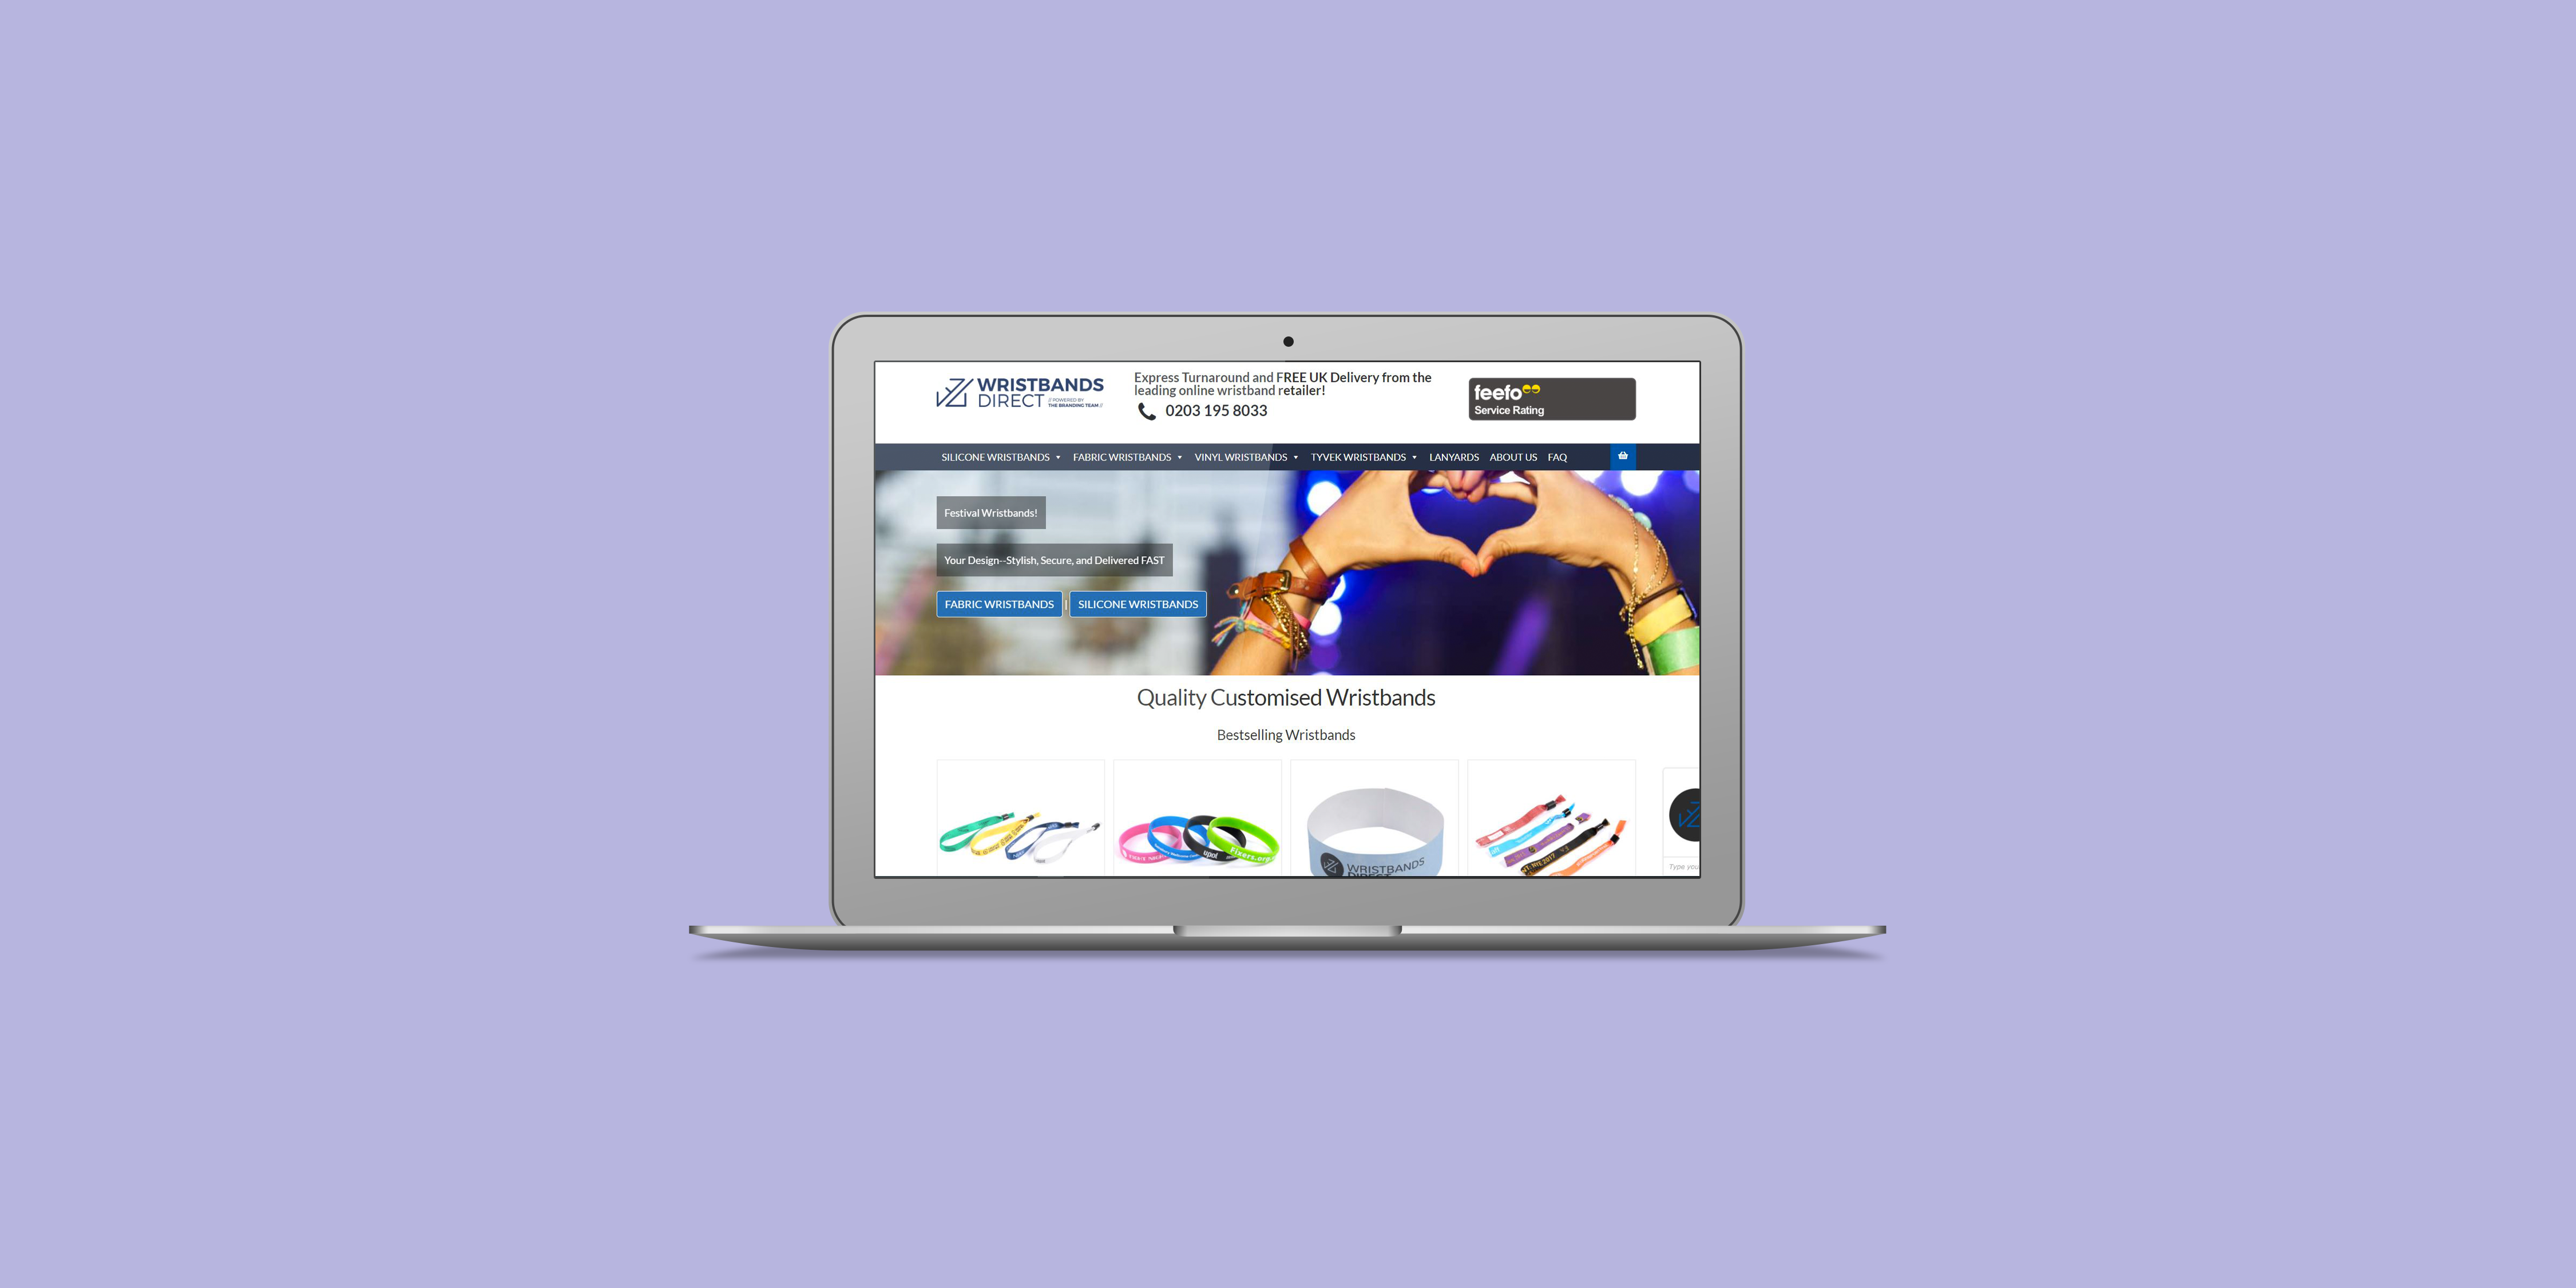 Wristbands Direct - The Web Orchard - Web Design Shrewsbury